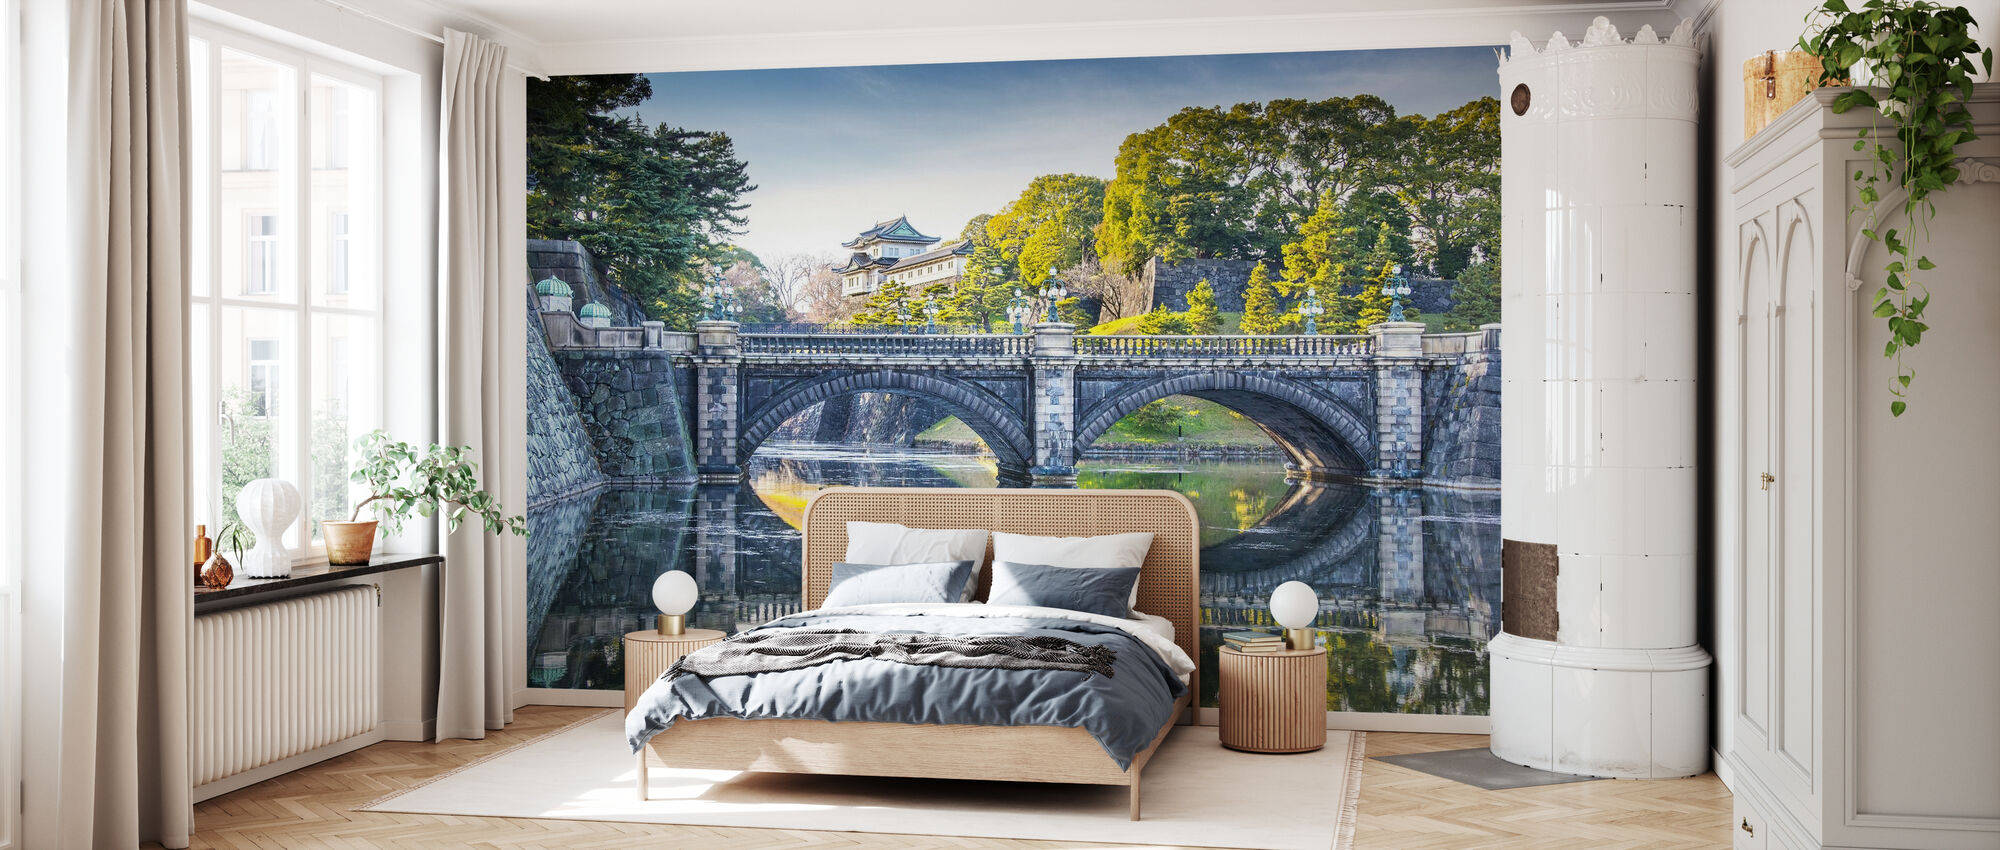 Tokyo Imperial Palace of Japan - Wallpaper - Bedroom